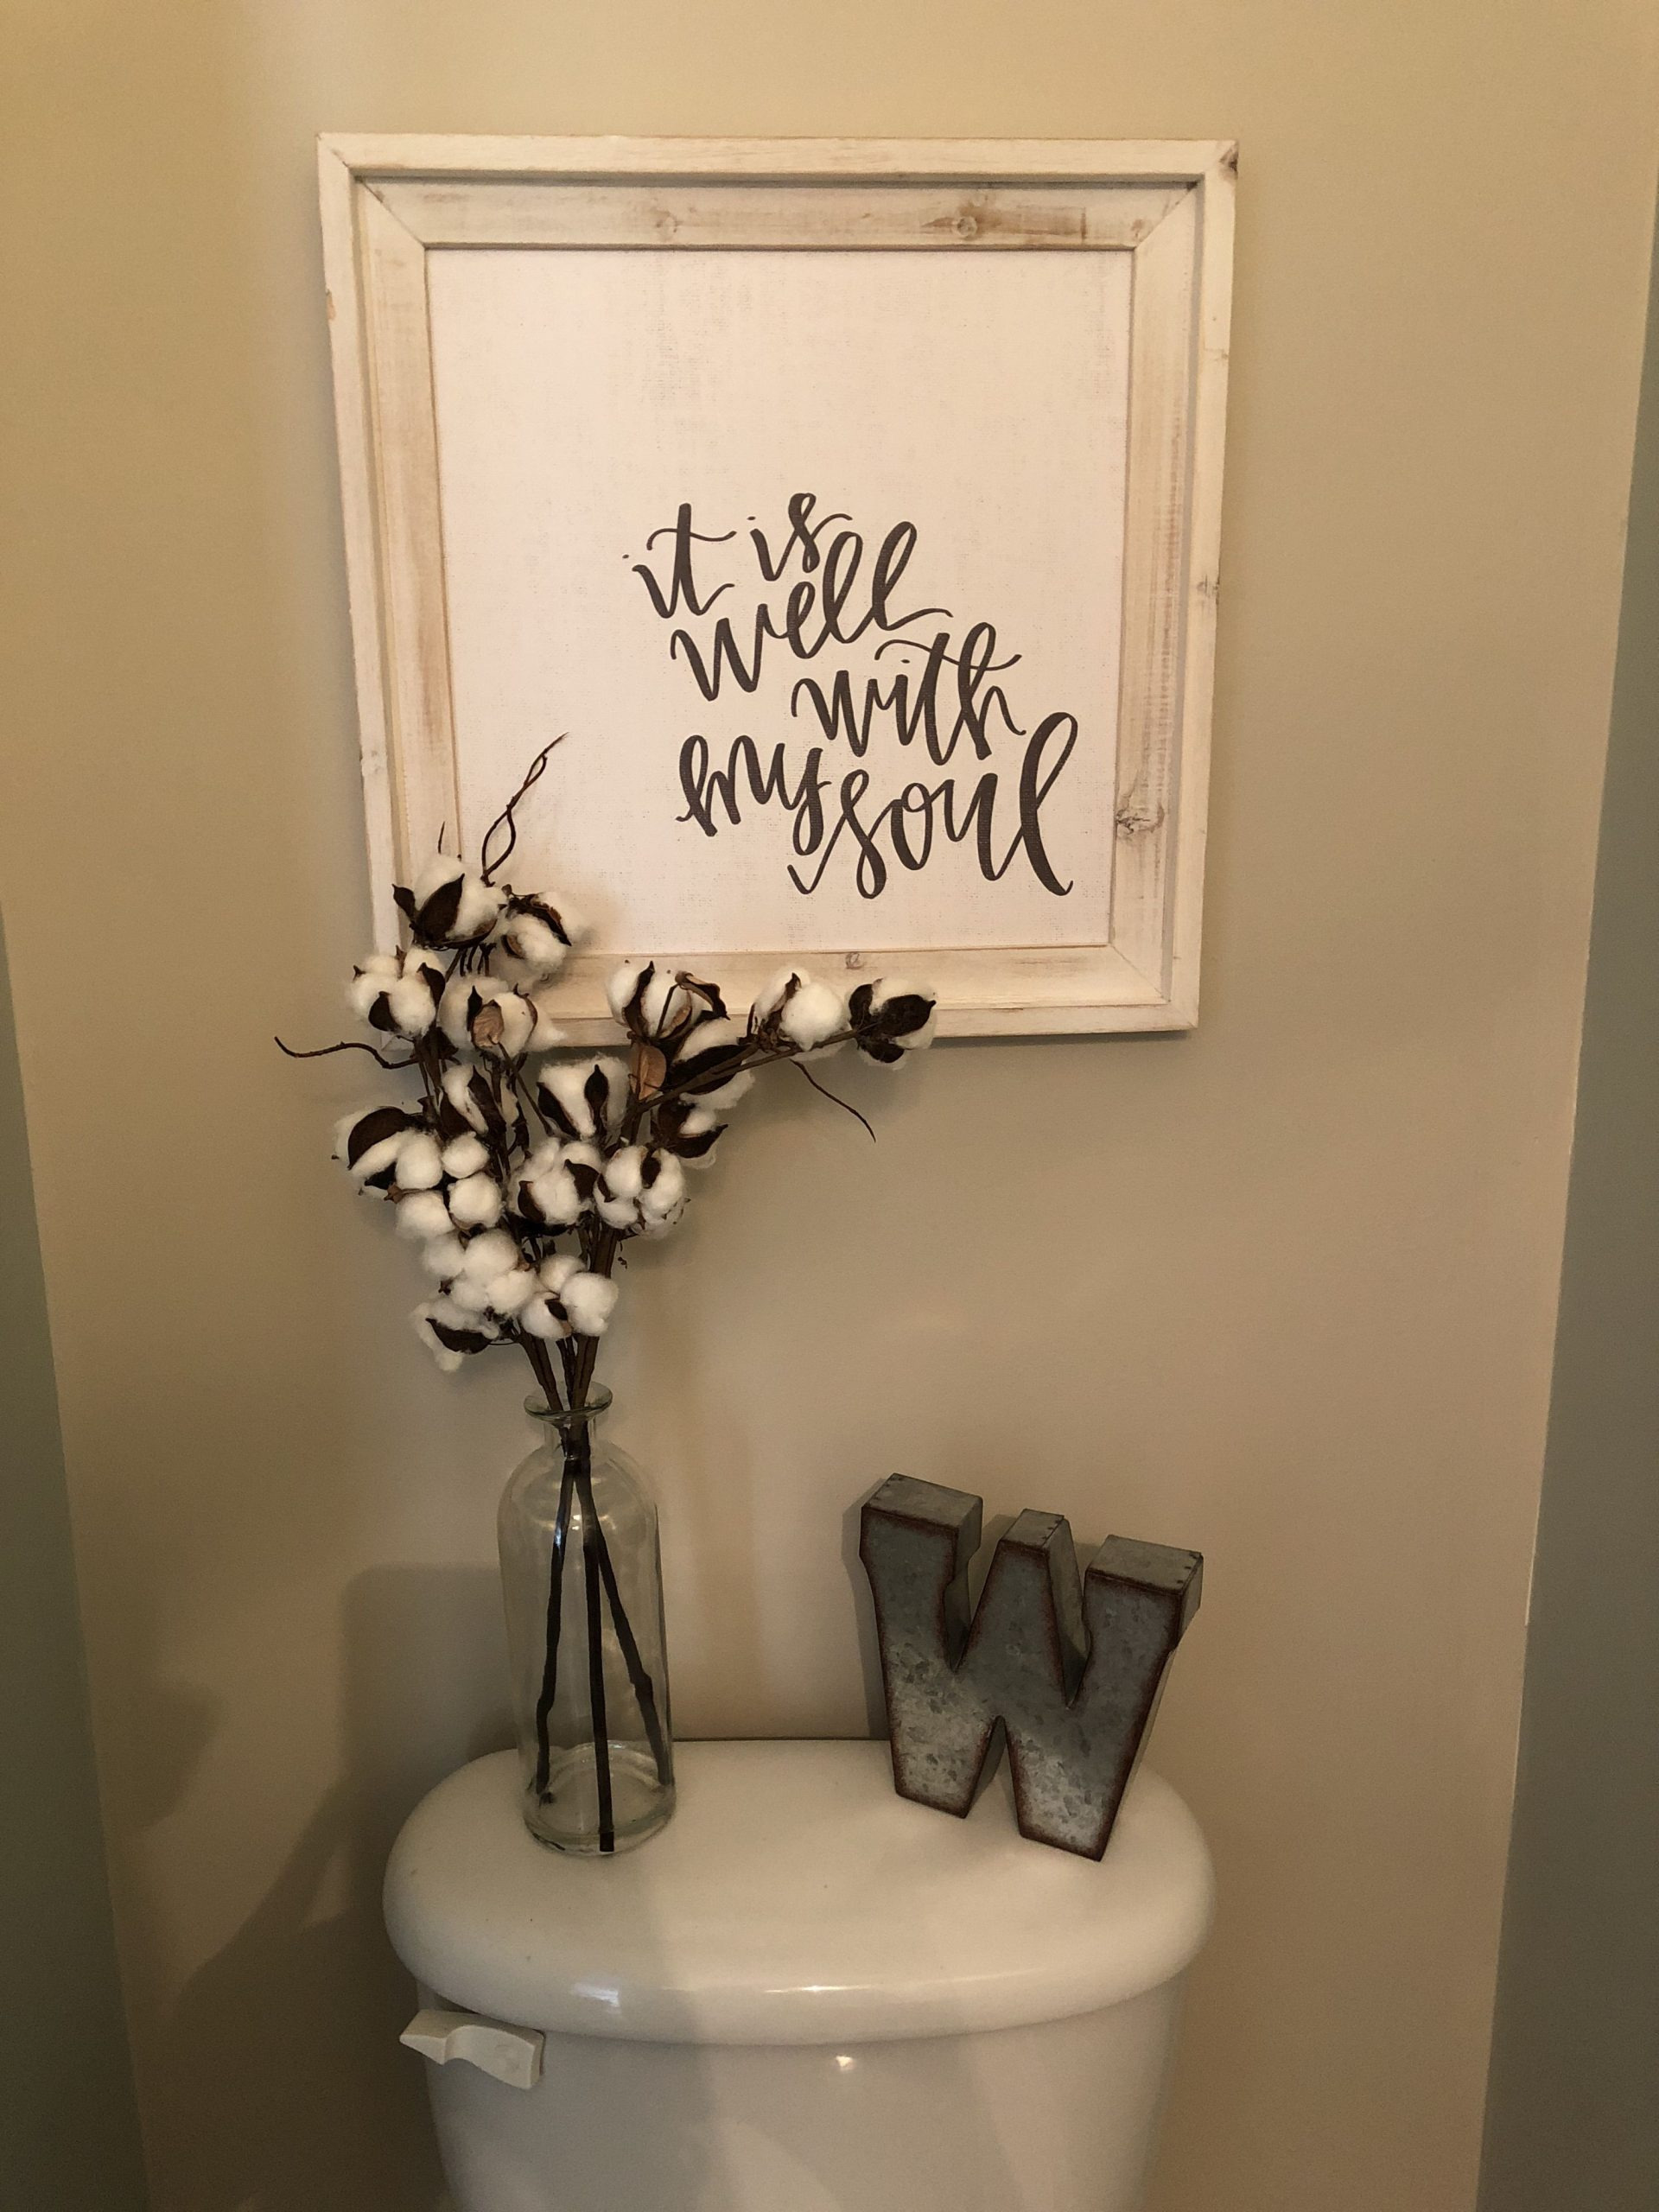 Guest Bathroom Wall Decor French Country Flower For scaled